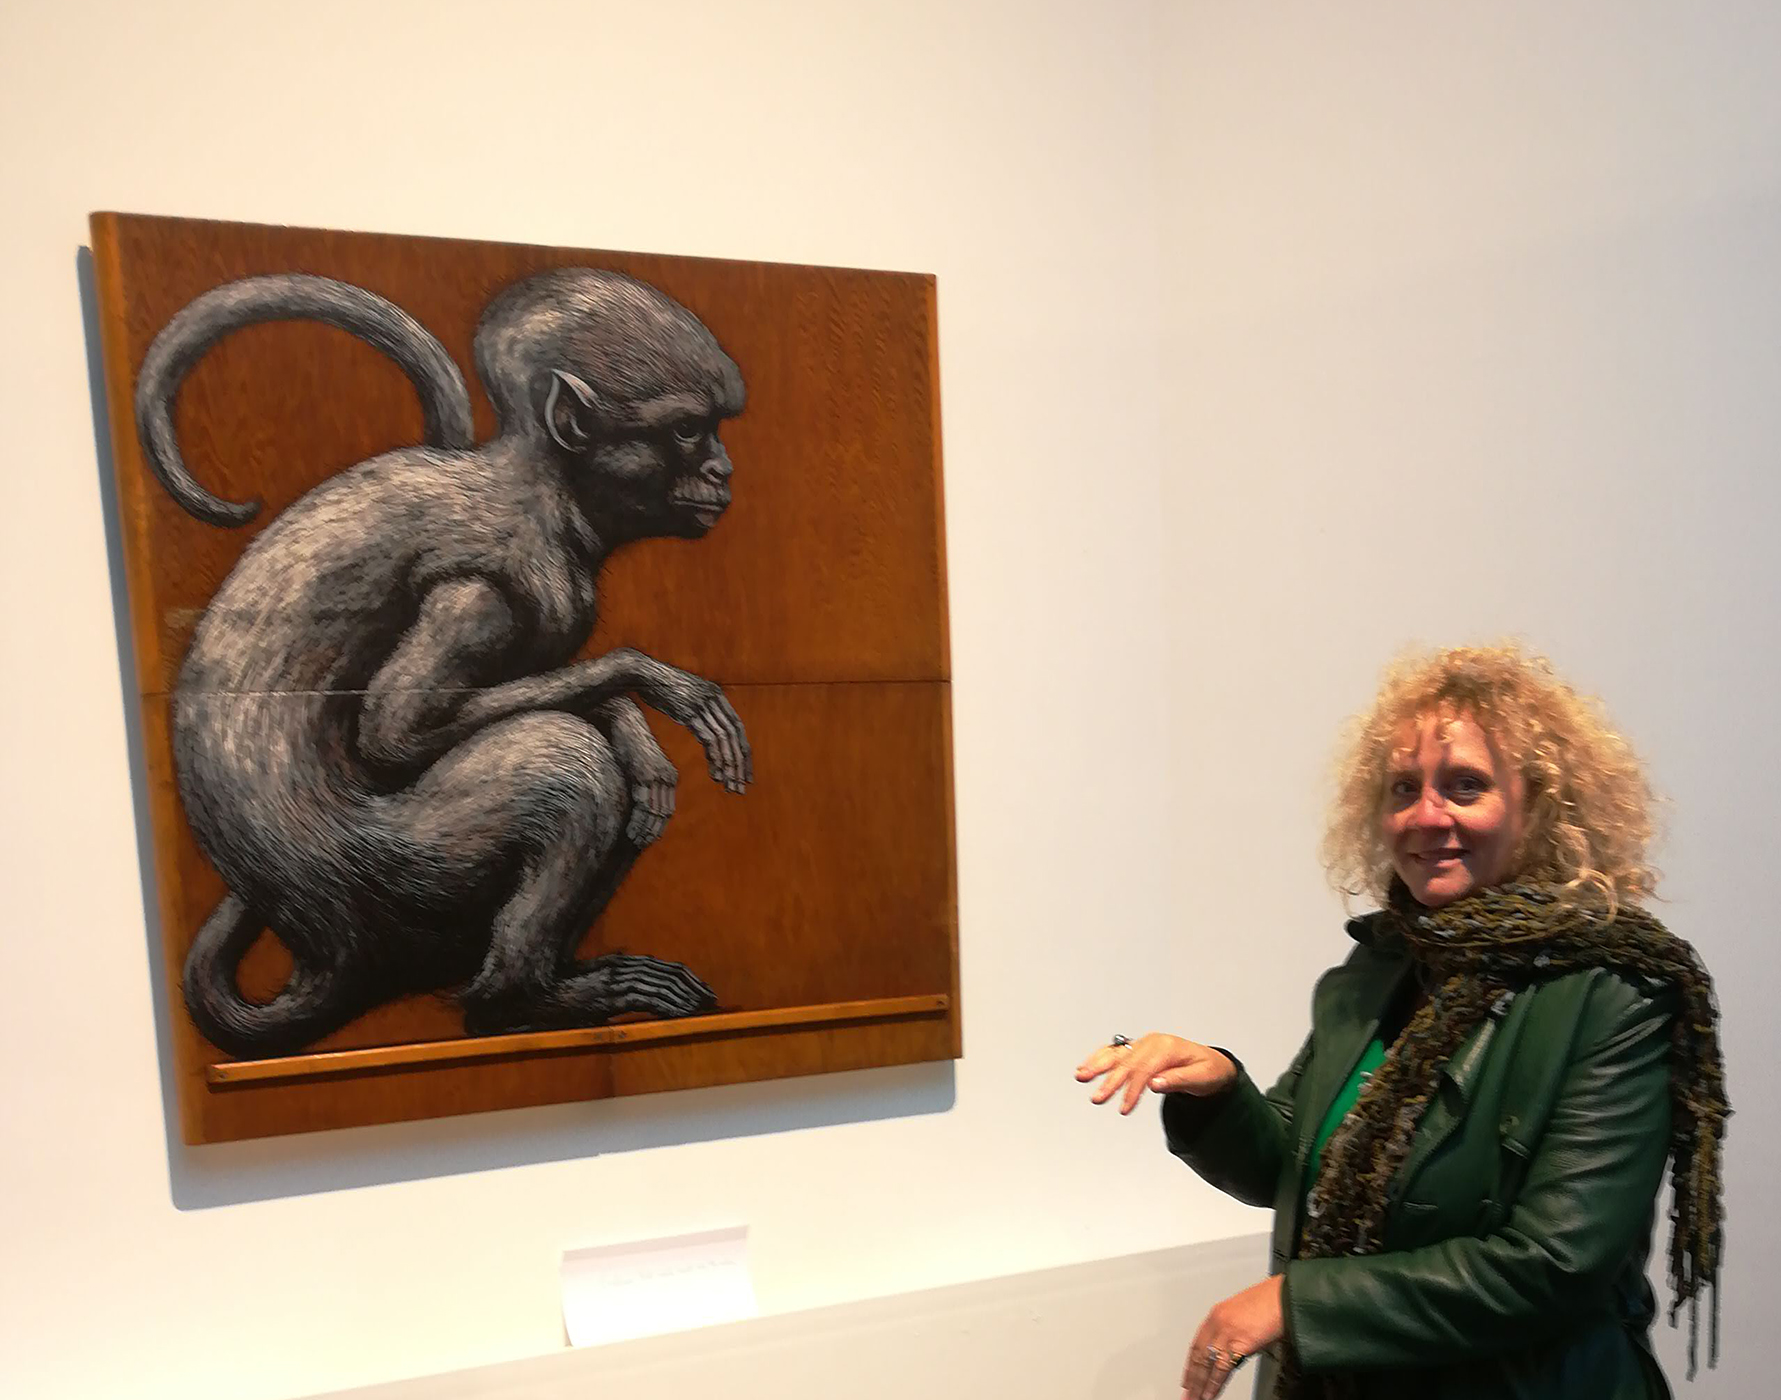 ROA's monkey and me